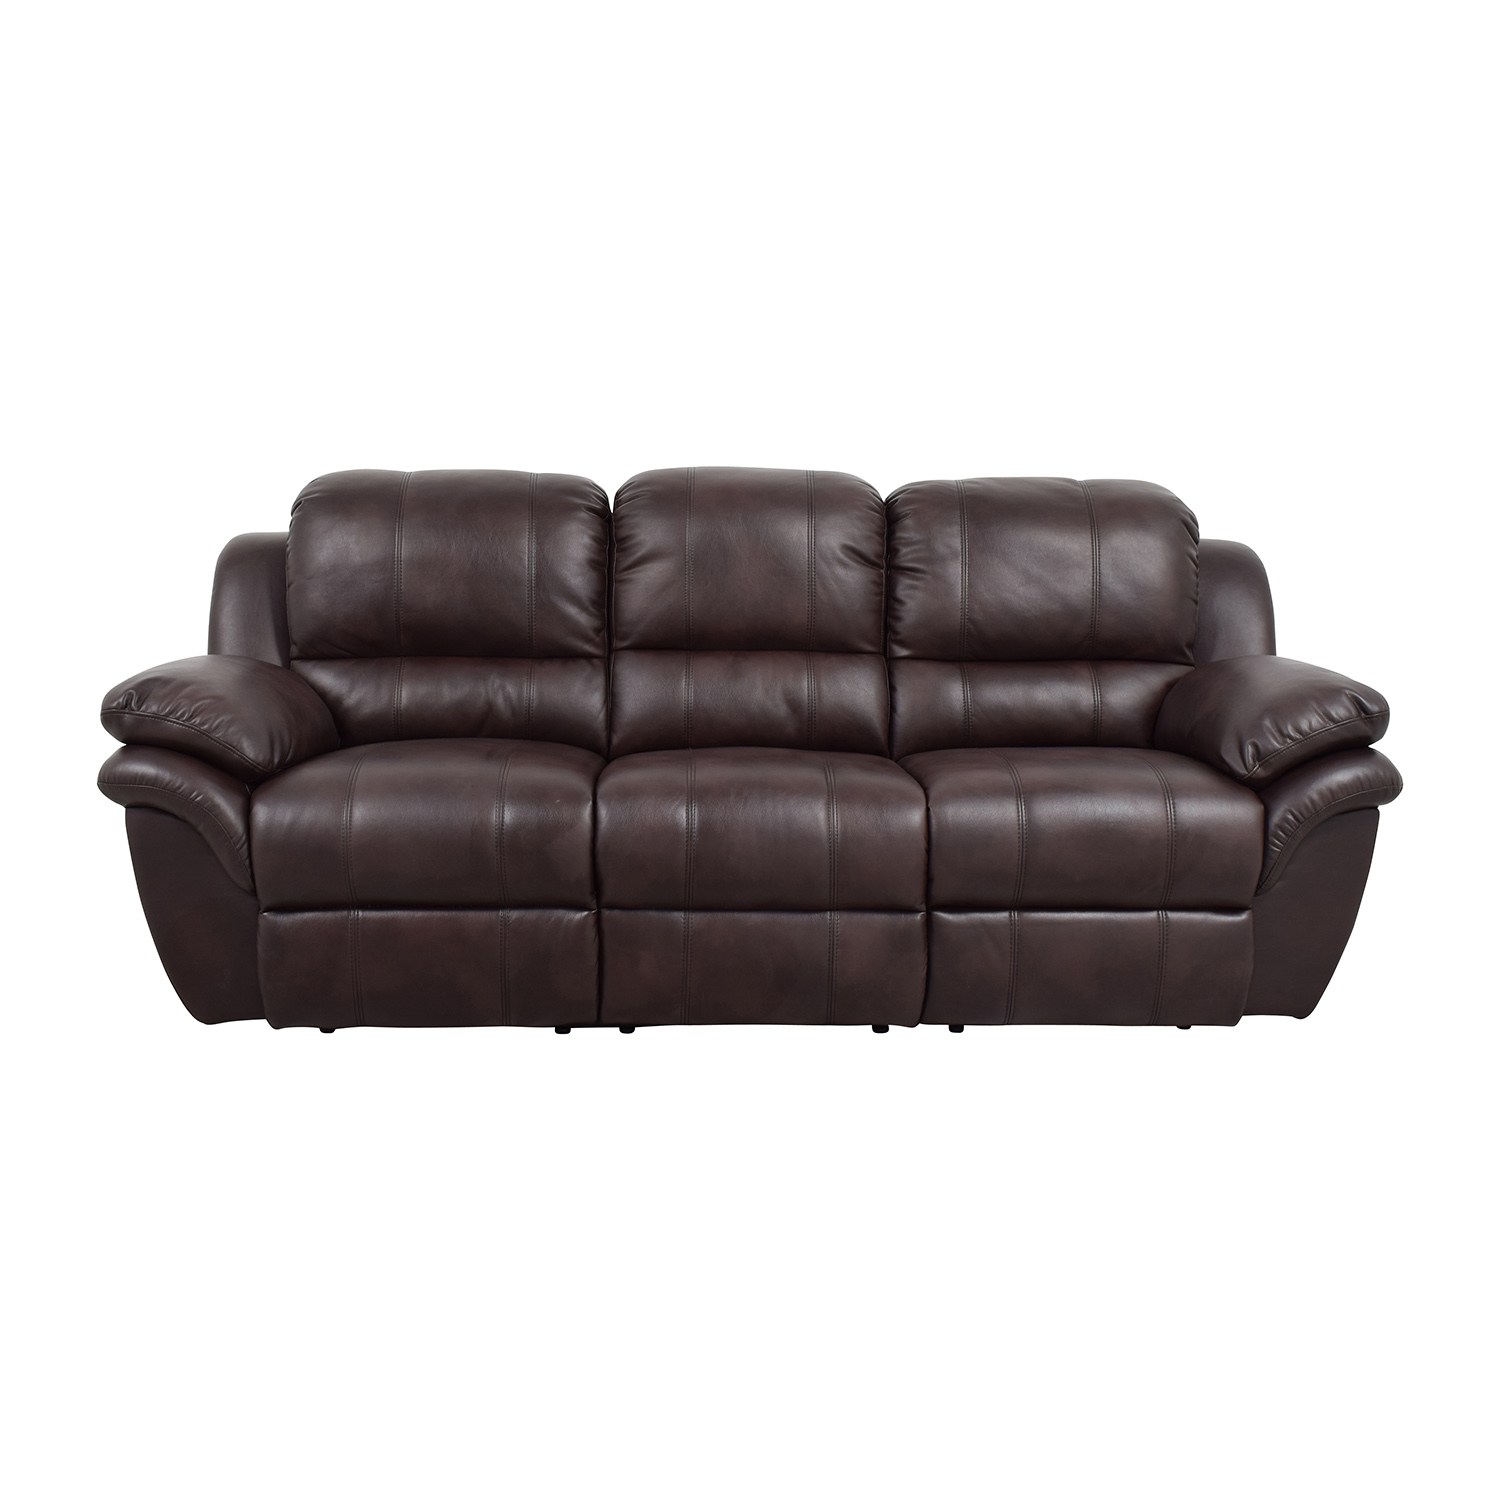 New Classic Home Furnishing New Classic Home Furnishing Leather Reclining Brown Couch nj